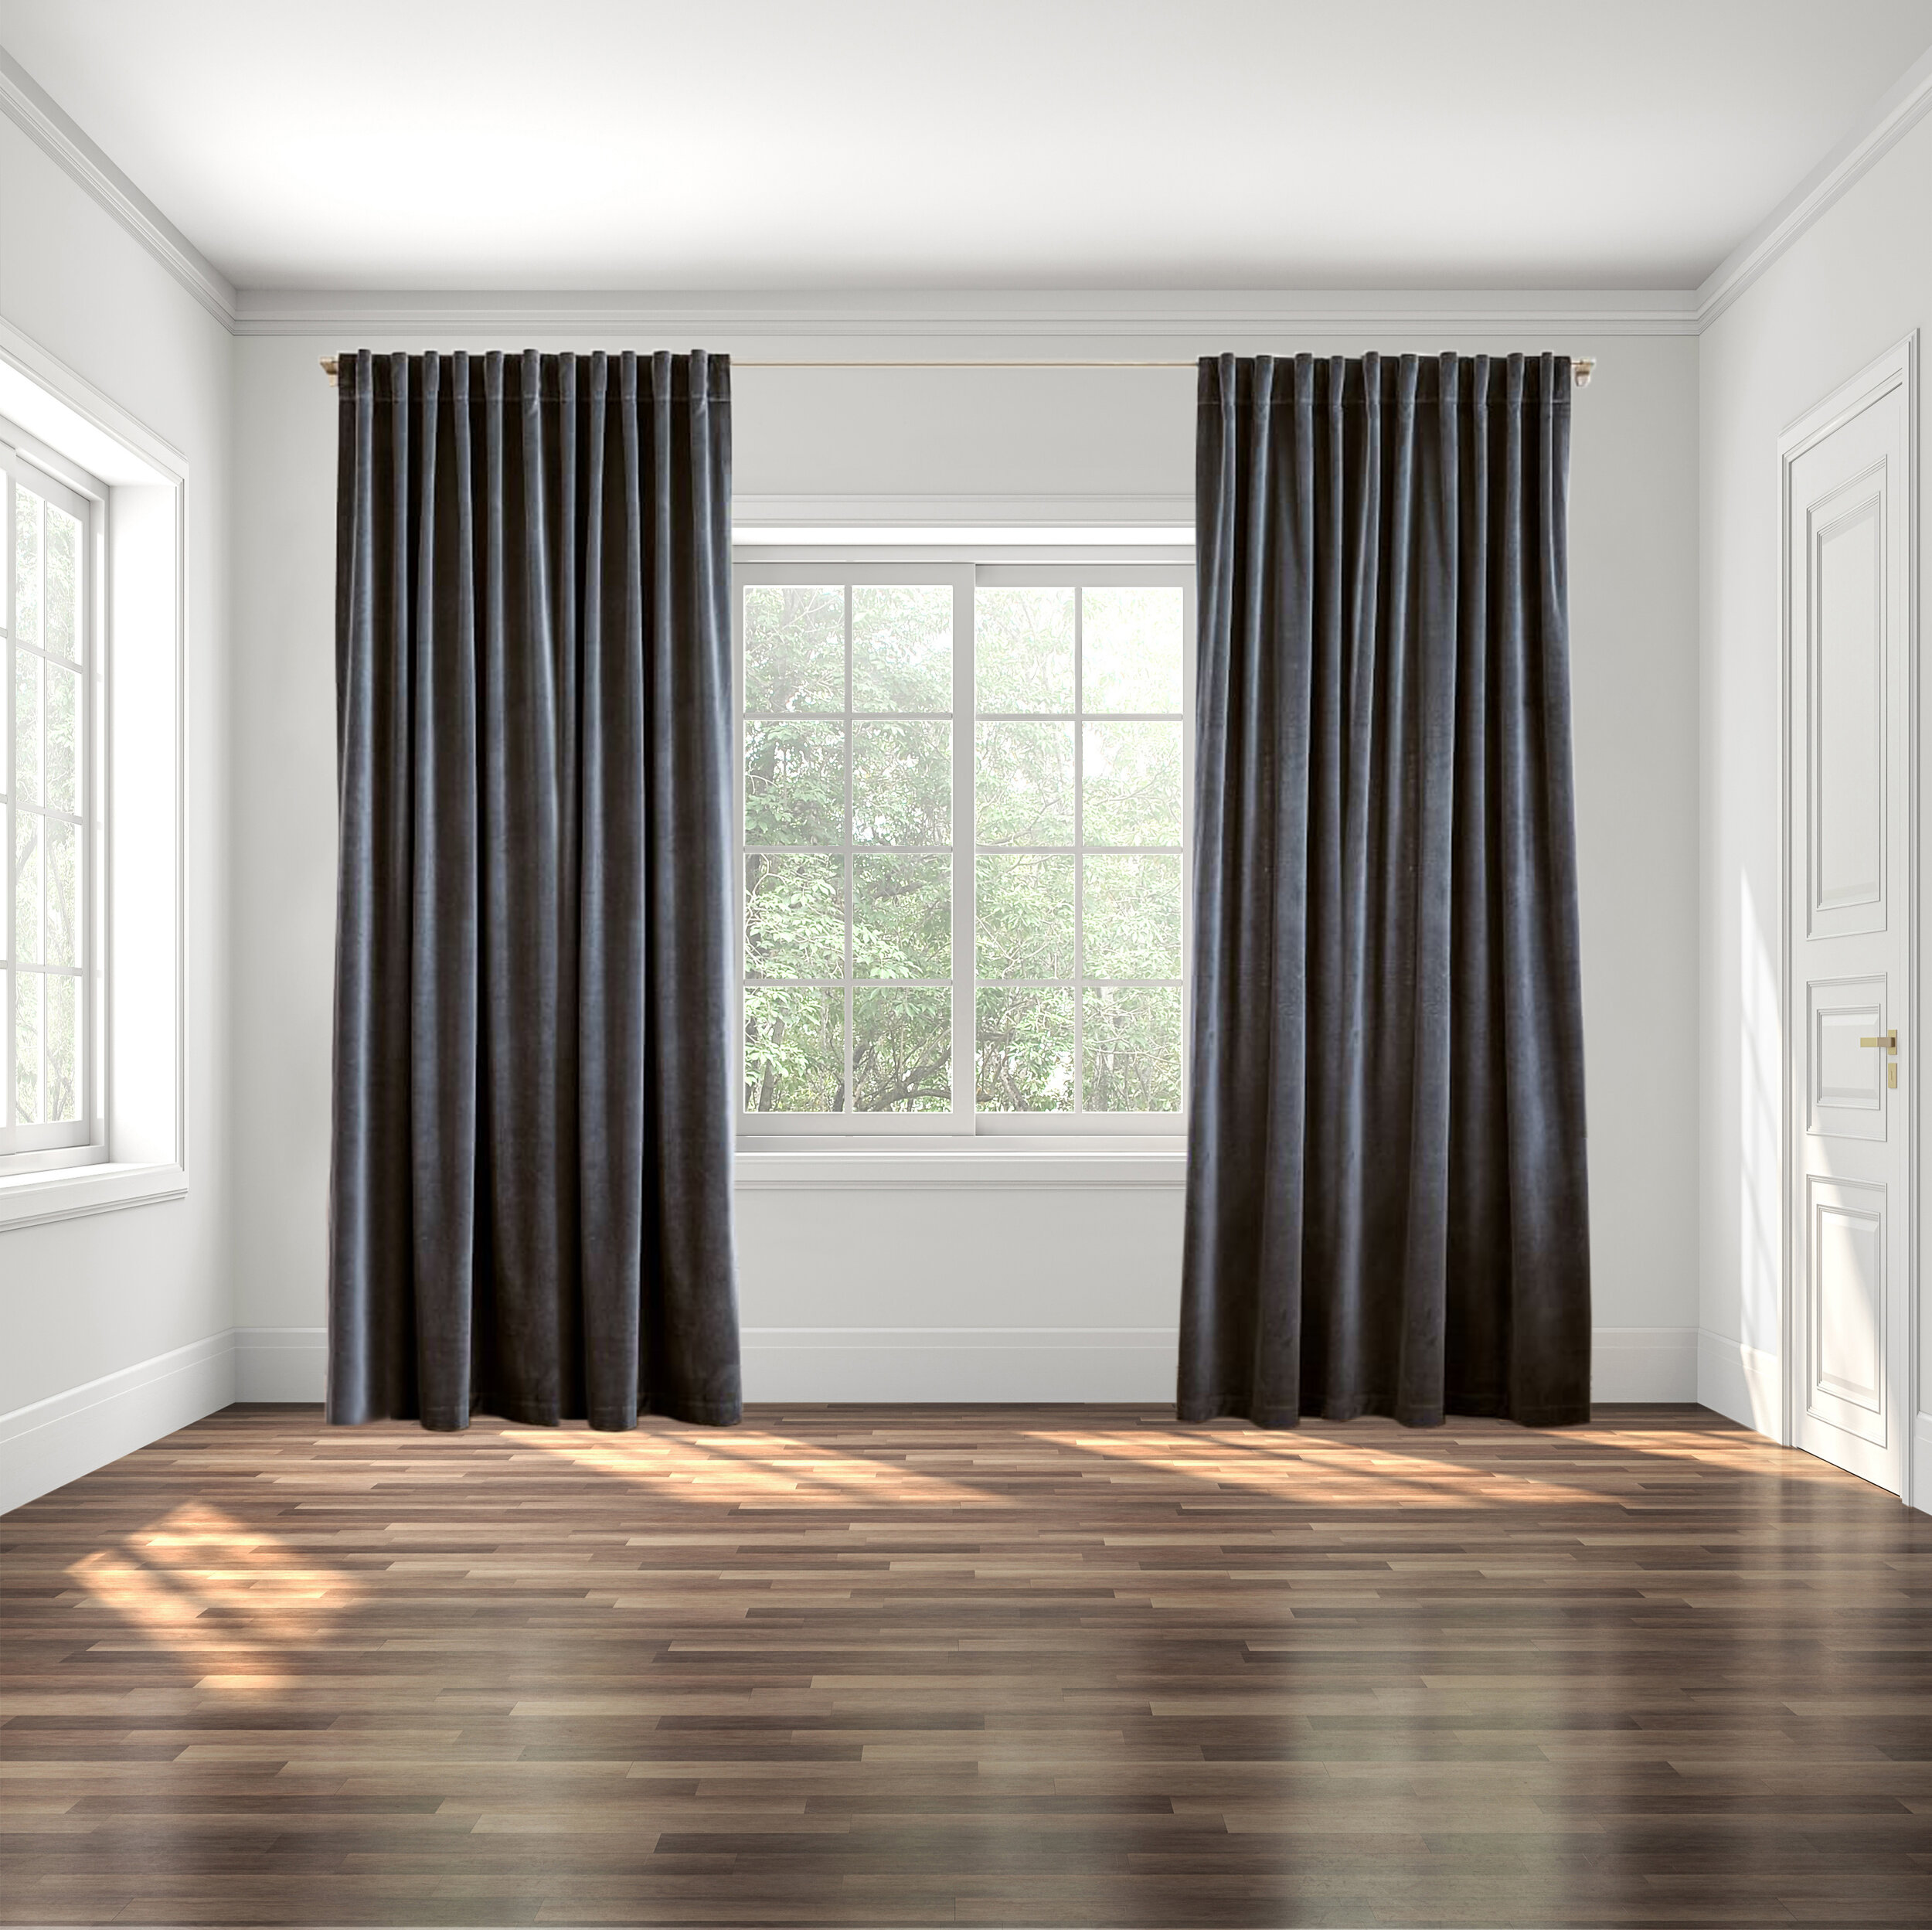 https nadinestay com blog the dos donts of curtain placement